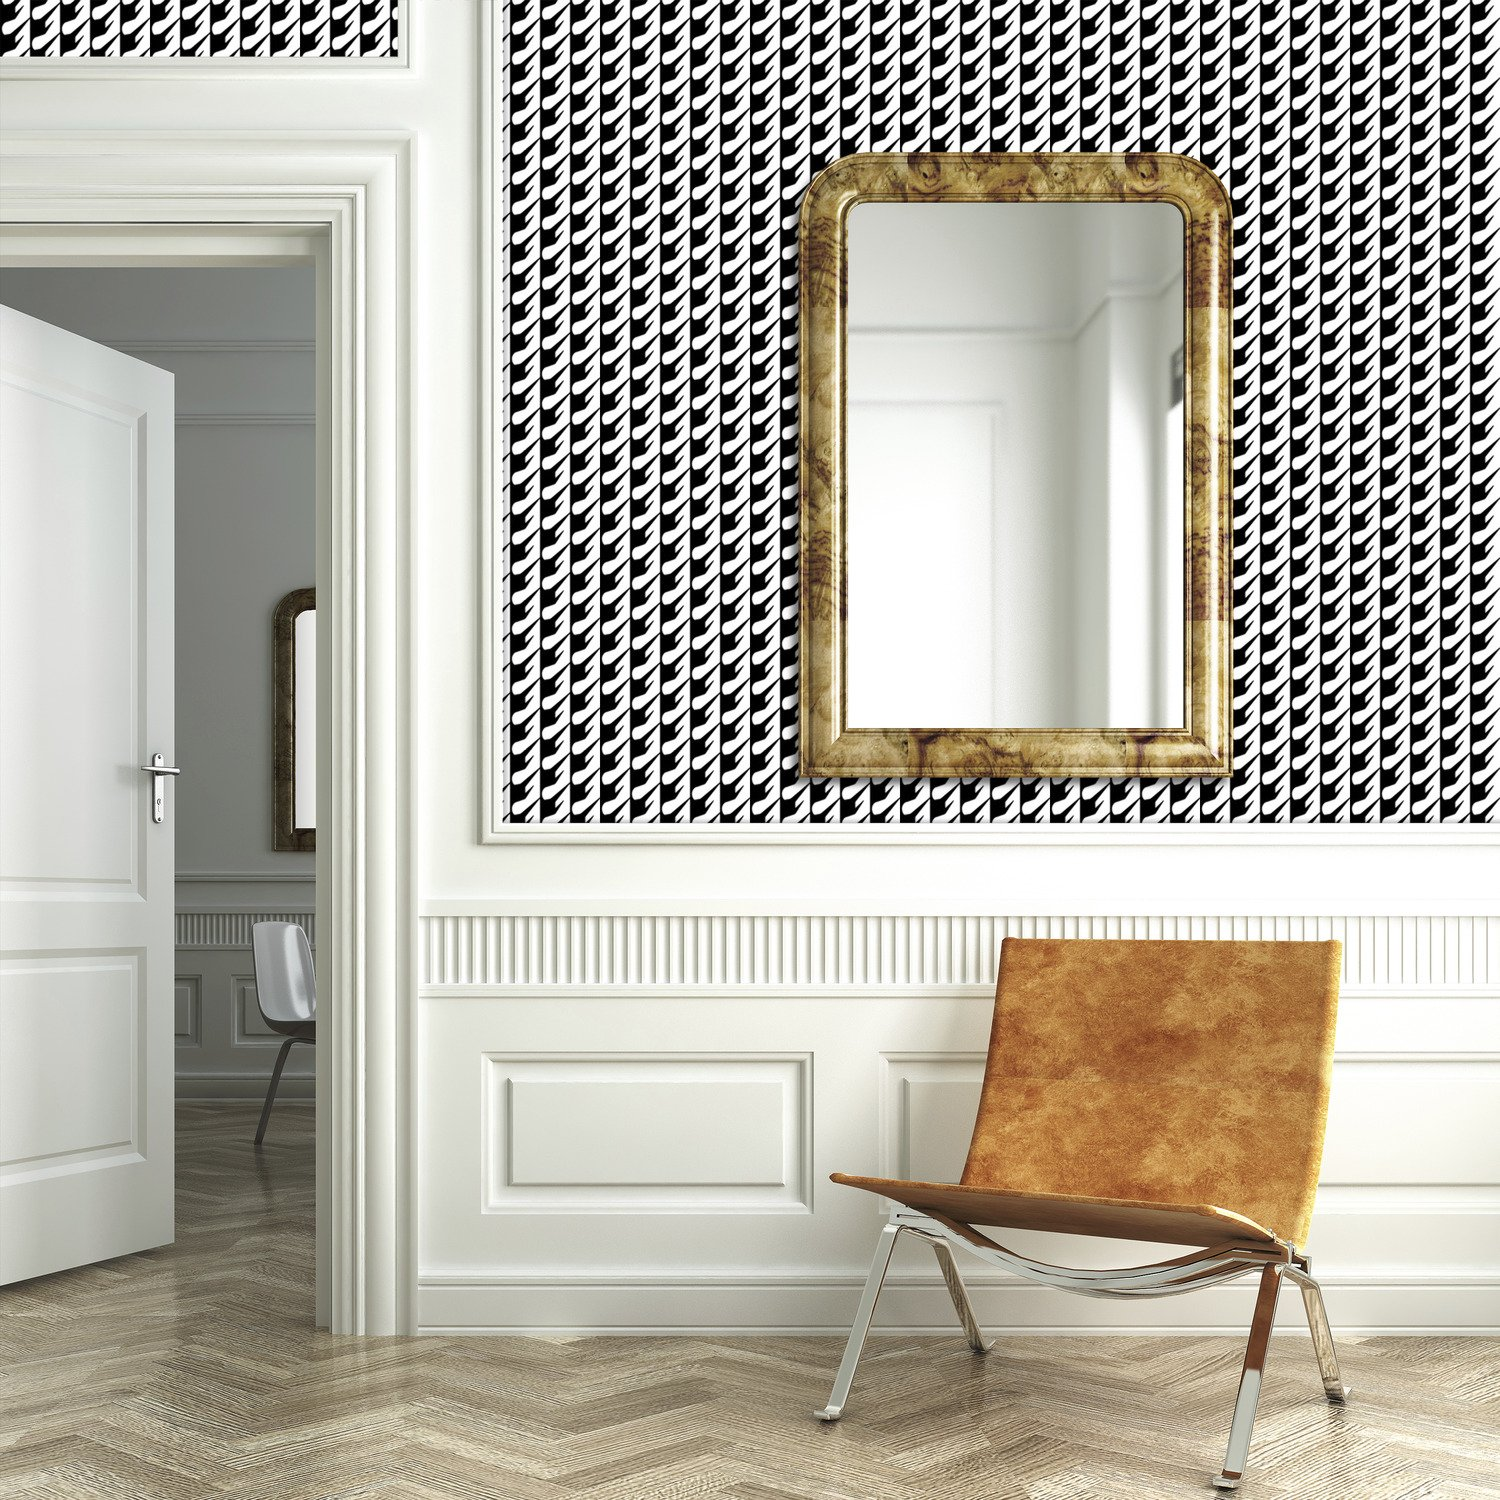 Houndstooth Expression Patterned mercial Textured Wallpaper by